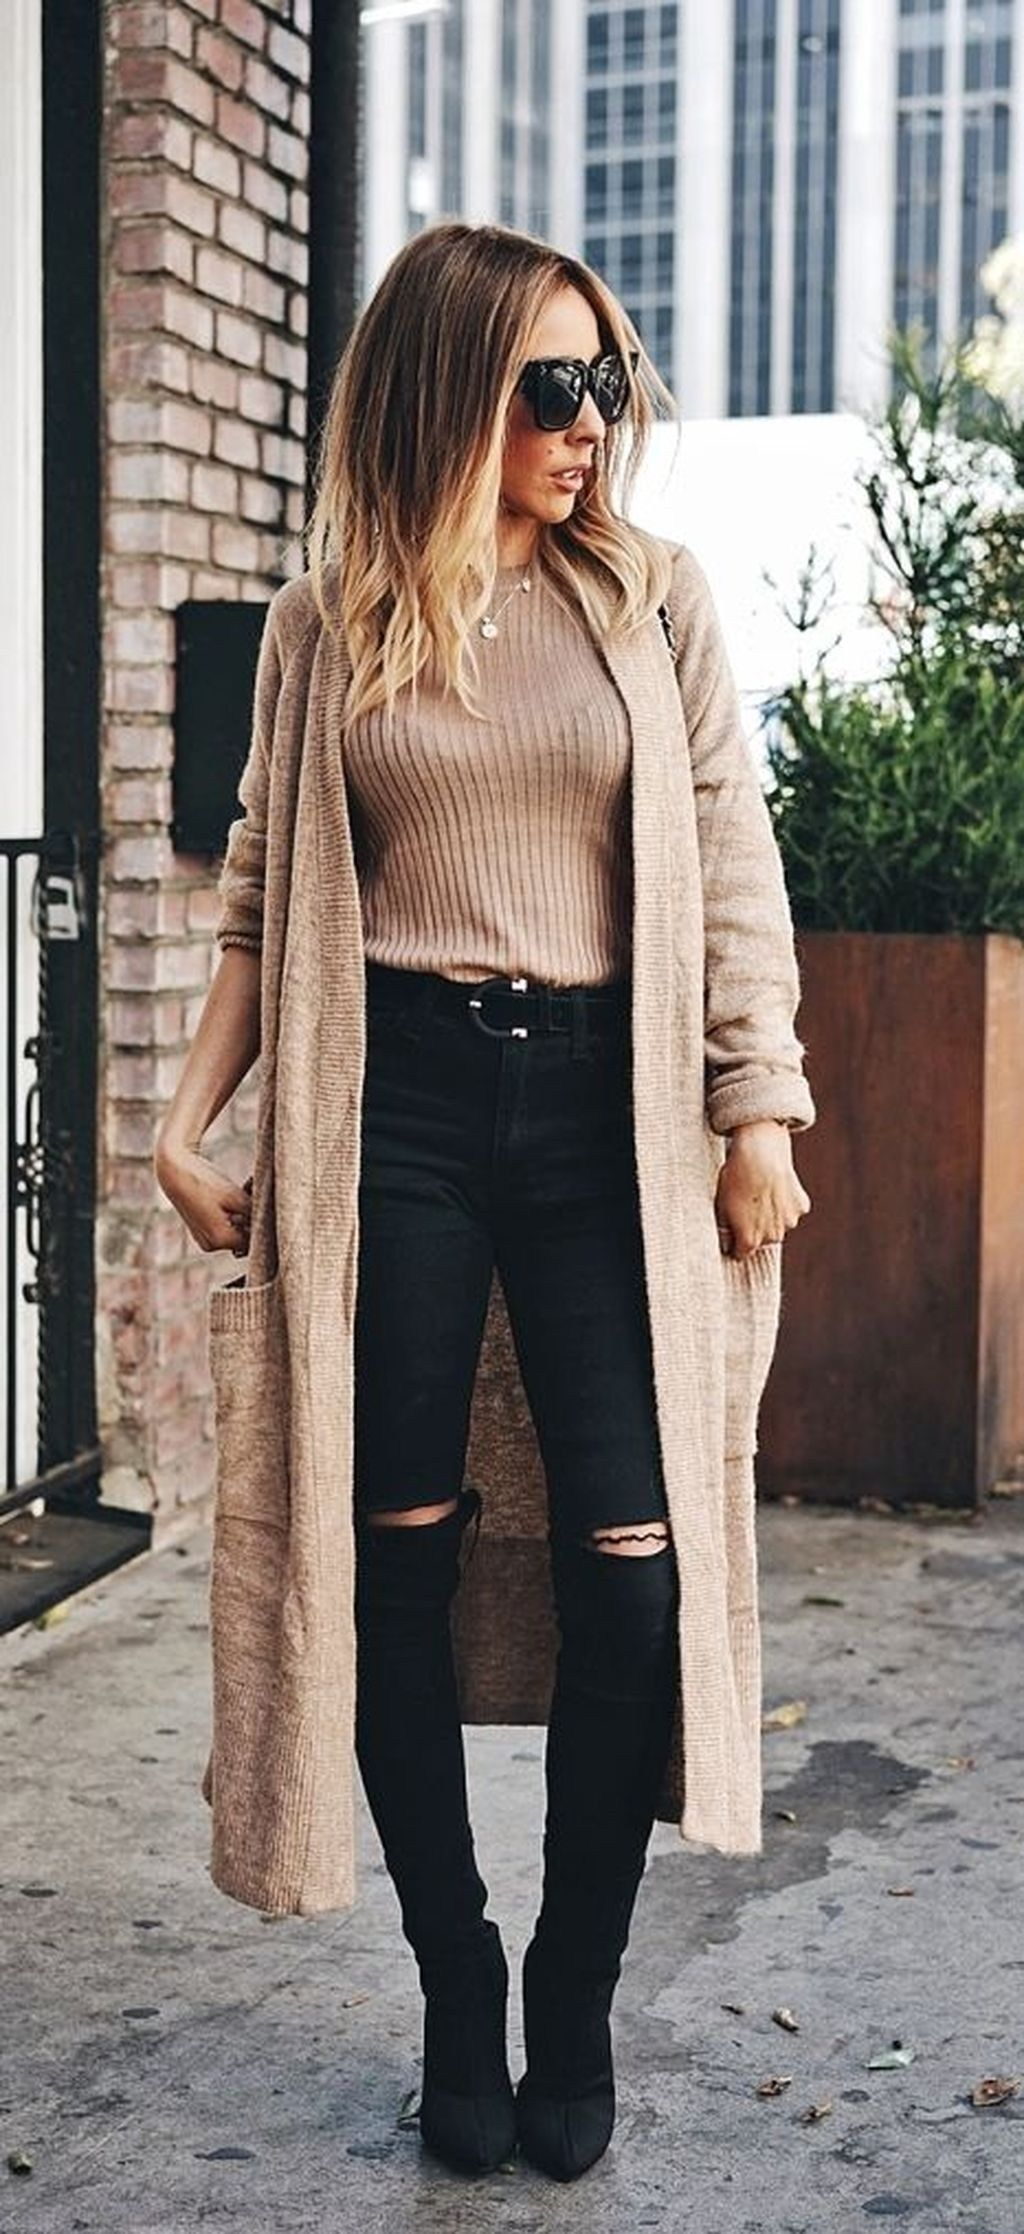 Casual Winter Outfits Ideas With Long Cardigans 17  Cozy fall